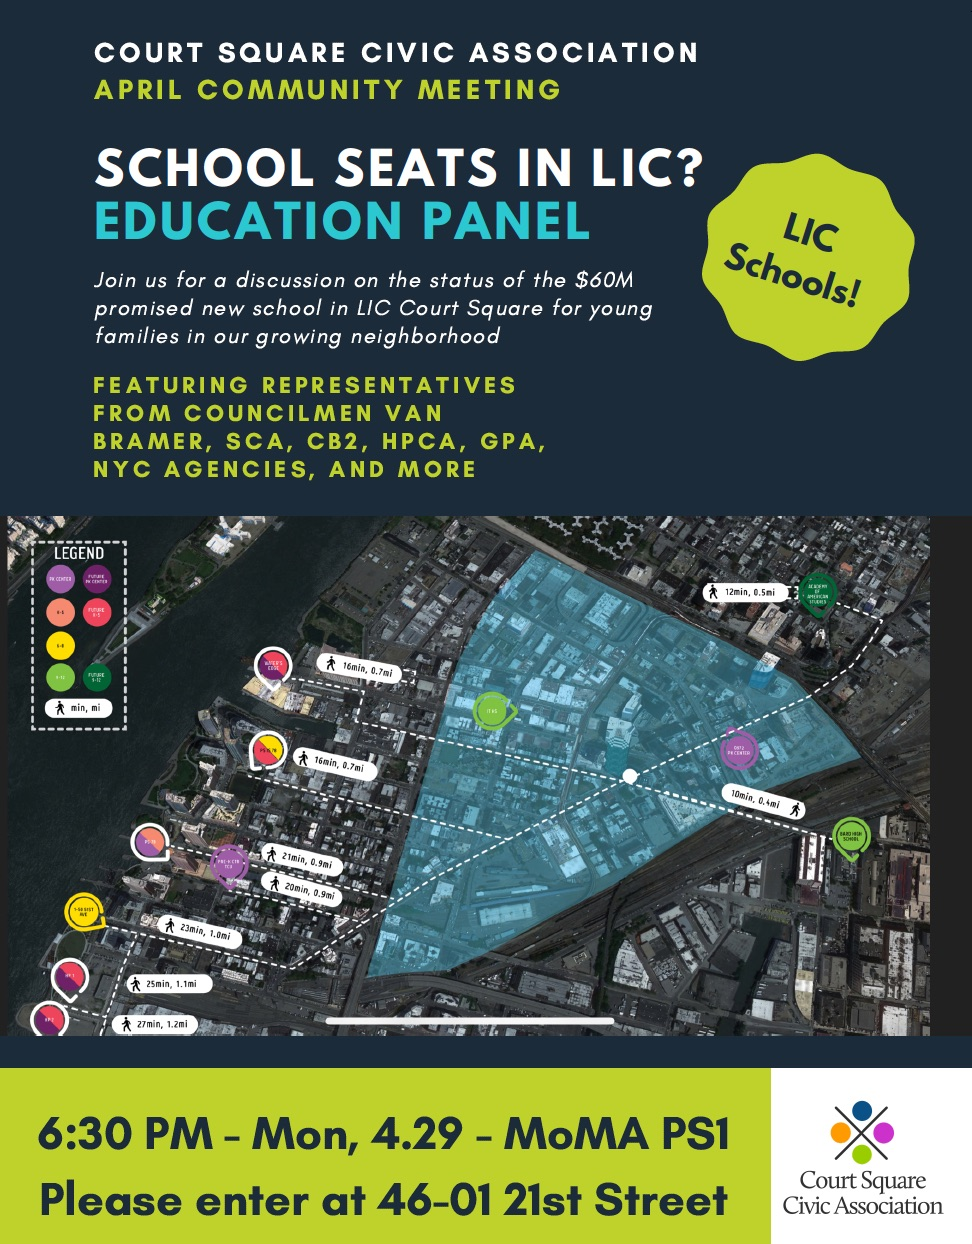 Meeting: LIC EducationCommittee: EducationDate: April 29th, 2019Time: 6:30pmLocation: MoMA PS1 -